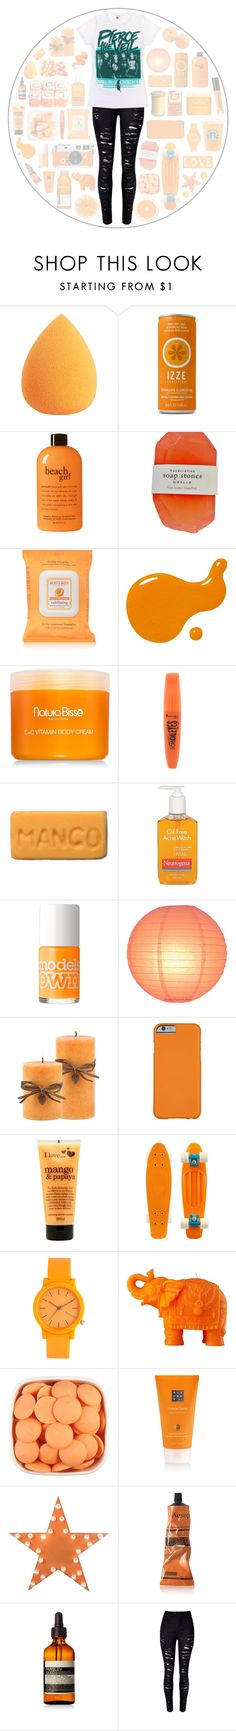 """(iPhone app) See how I made this set!"" by kaylaita0603 ❤ liked on Polyvore featuring philosophy, Burt's Bees, Natura Bissé, Rimmel, Hermès, Neutrogena, Models Own, I Love..., Komono and Mario Luca Giusti"